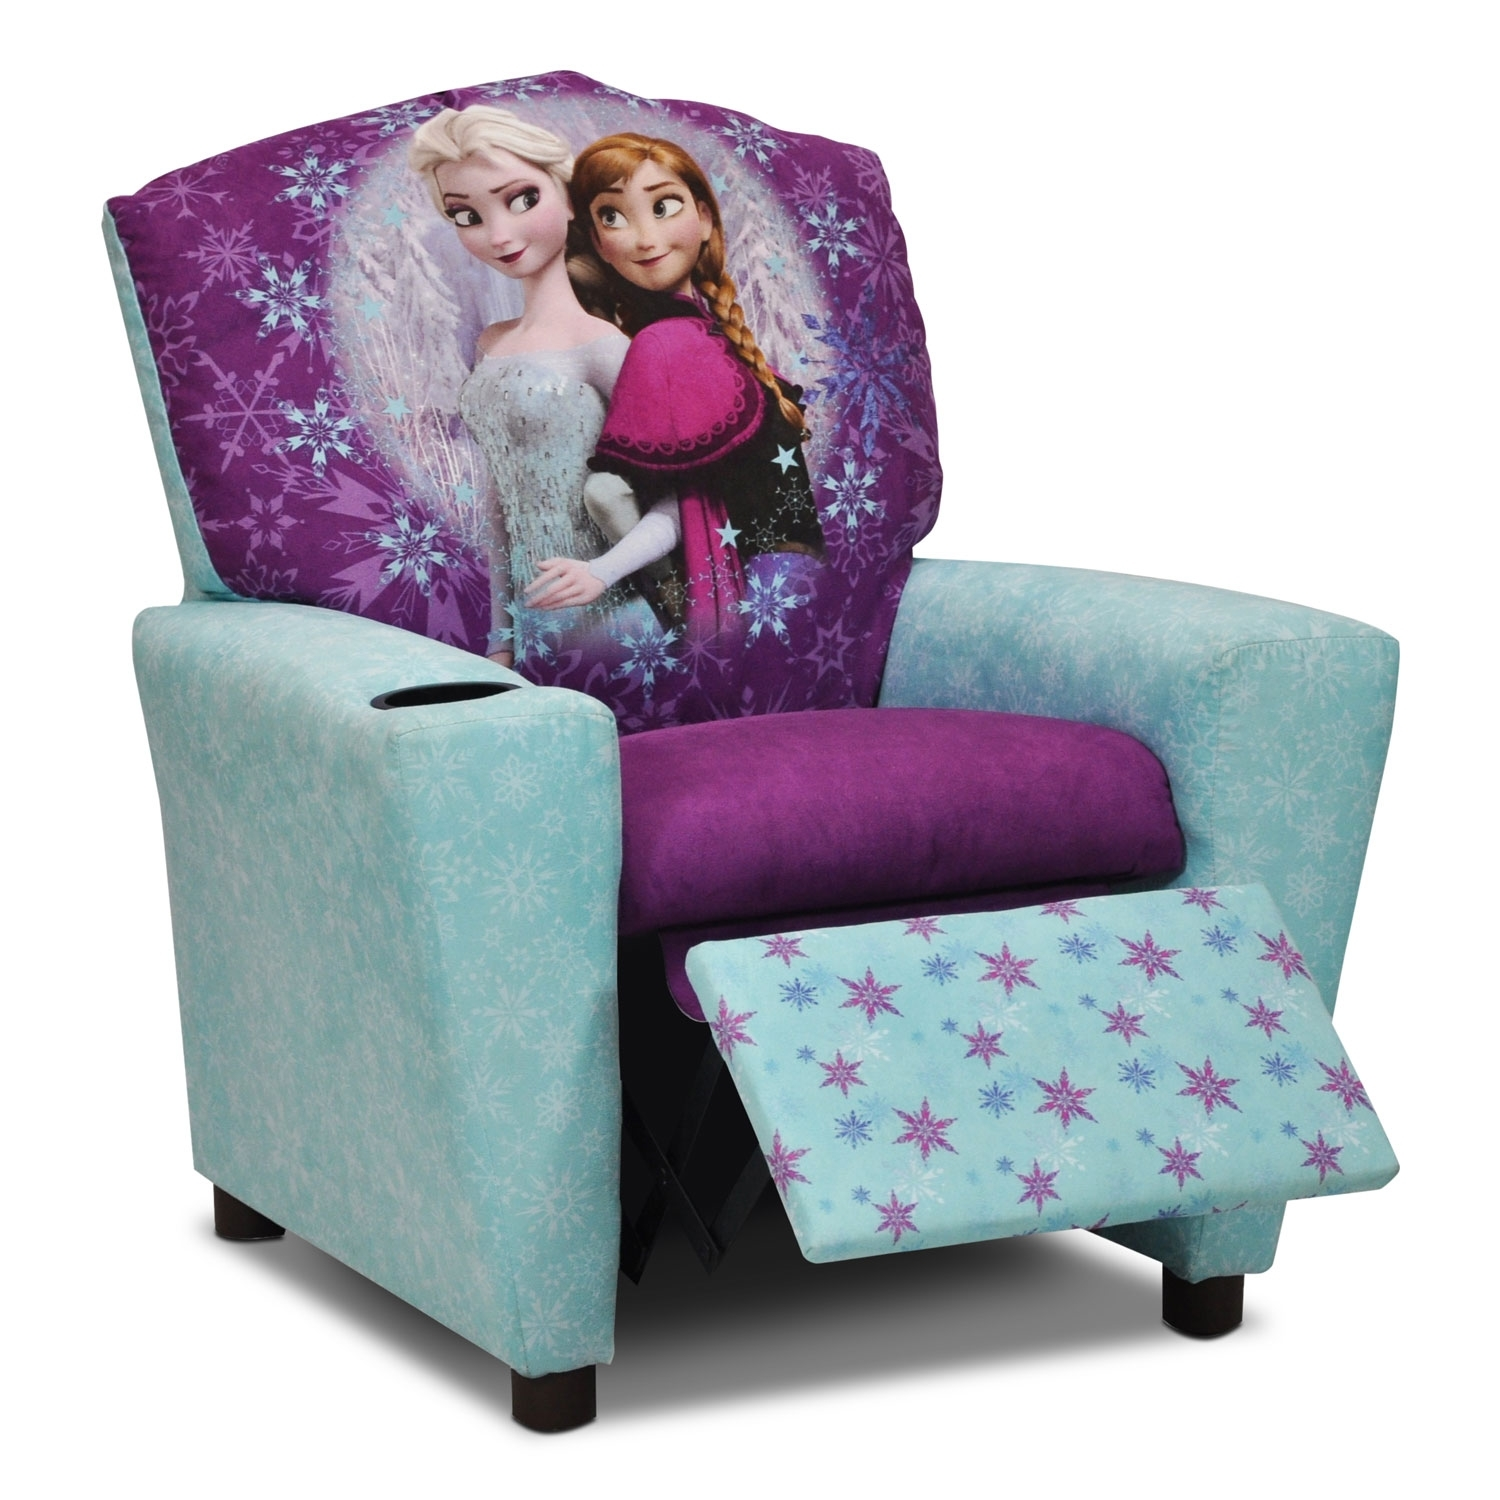 Sofa Chair For Kid Home Chair Designs Inside Disney Sofa Chairs (Image 12 of 15)